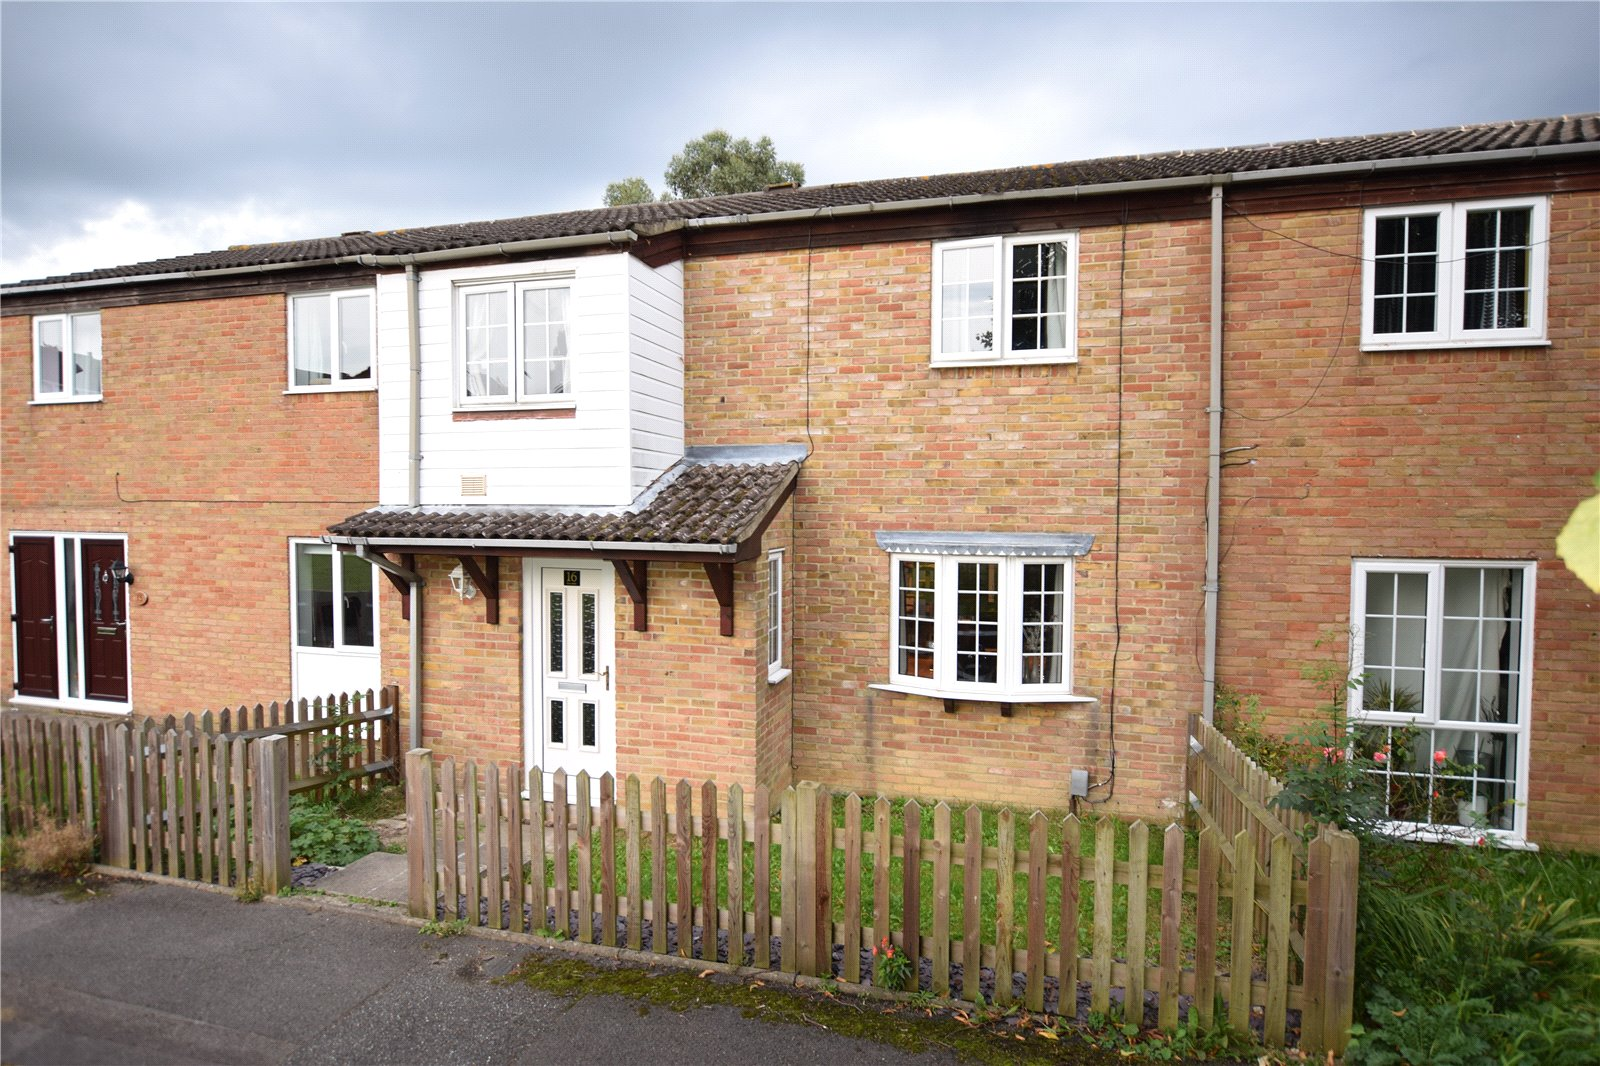 3 Bedrooms Terraced House for sale in Liscombe, Bracknell, Berkshire, RG12